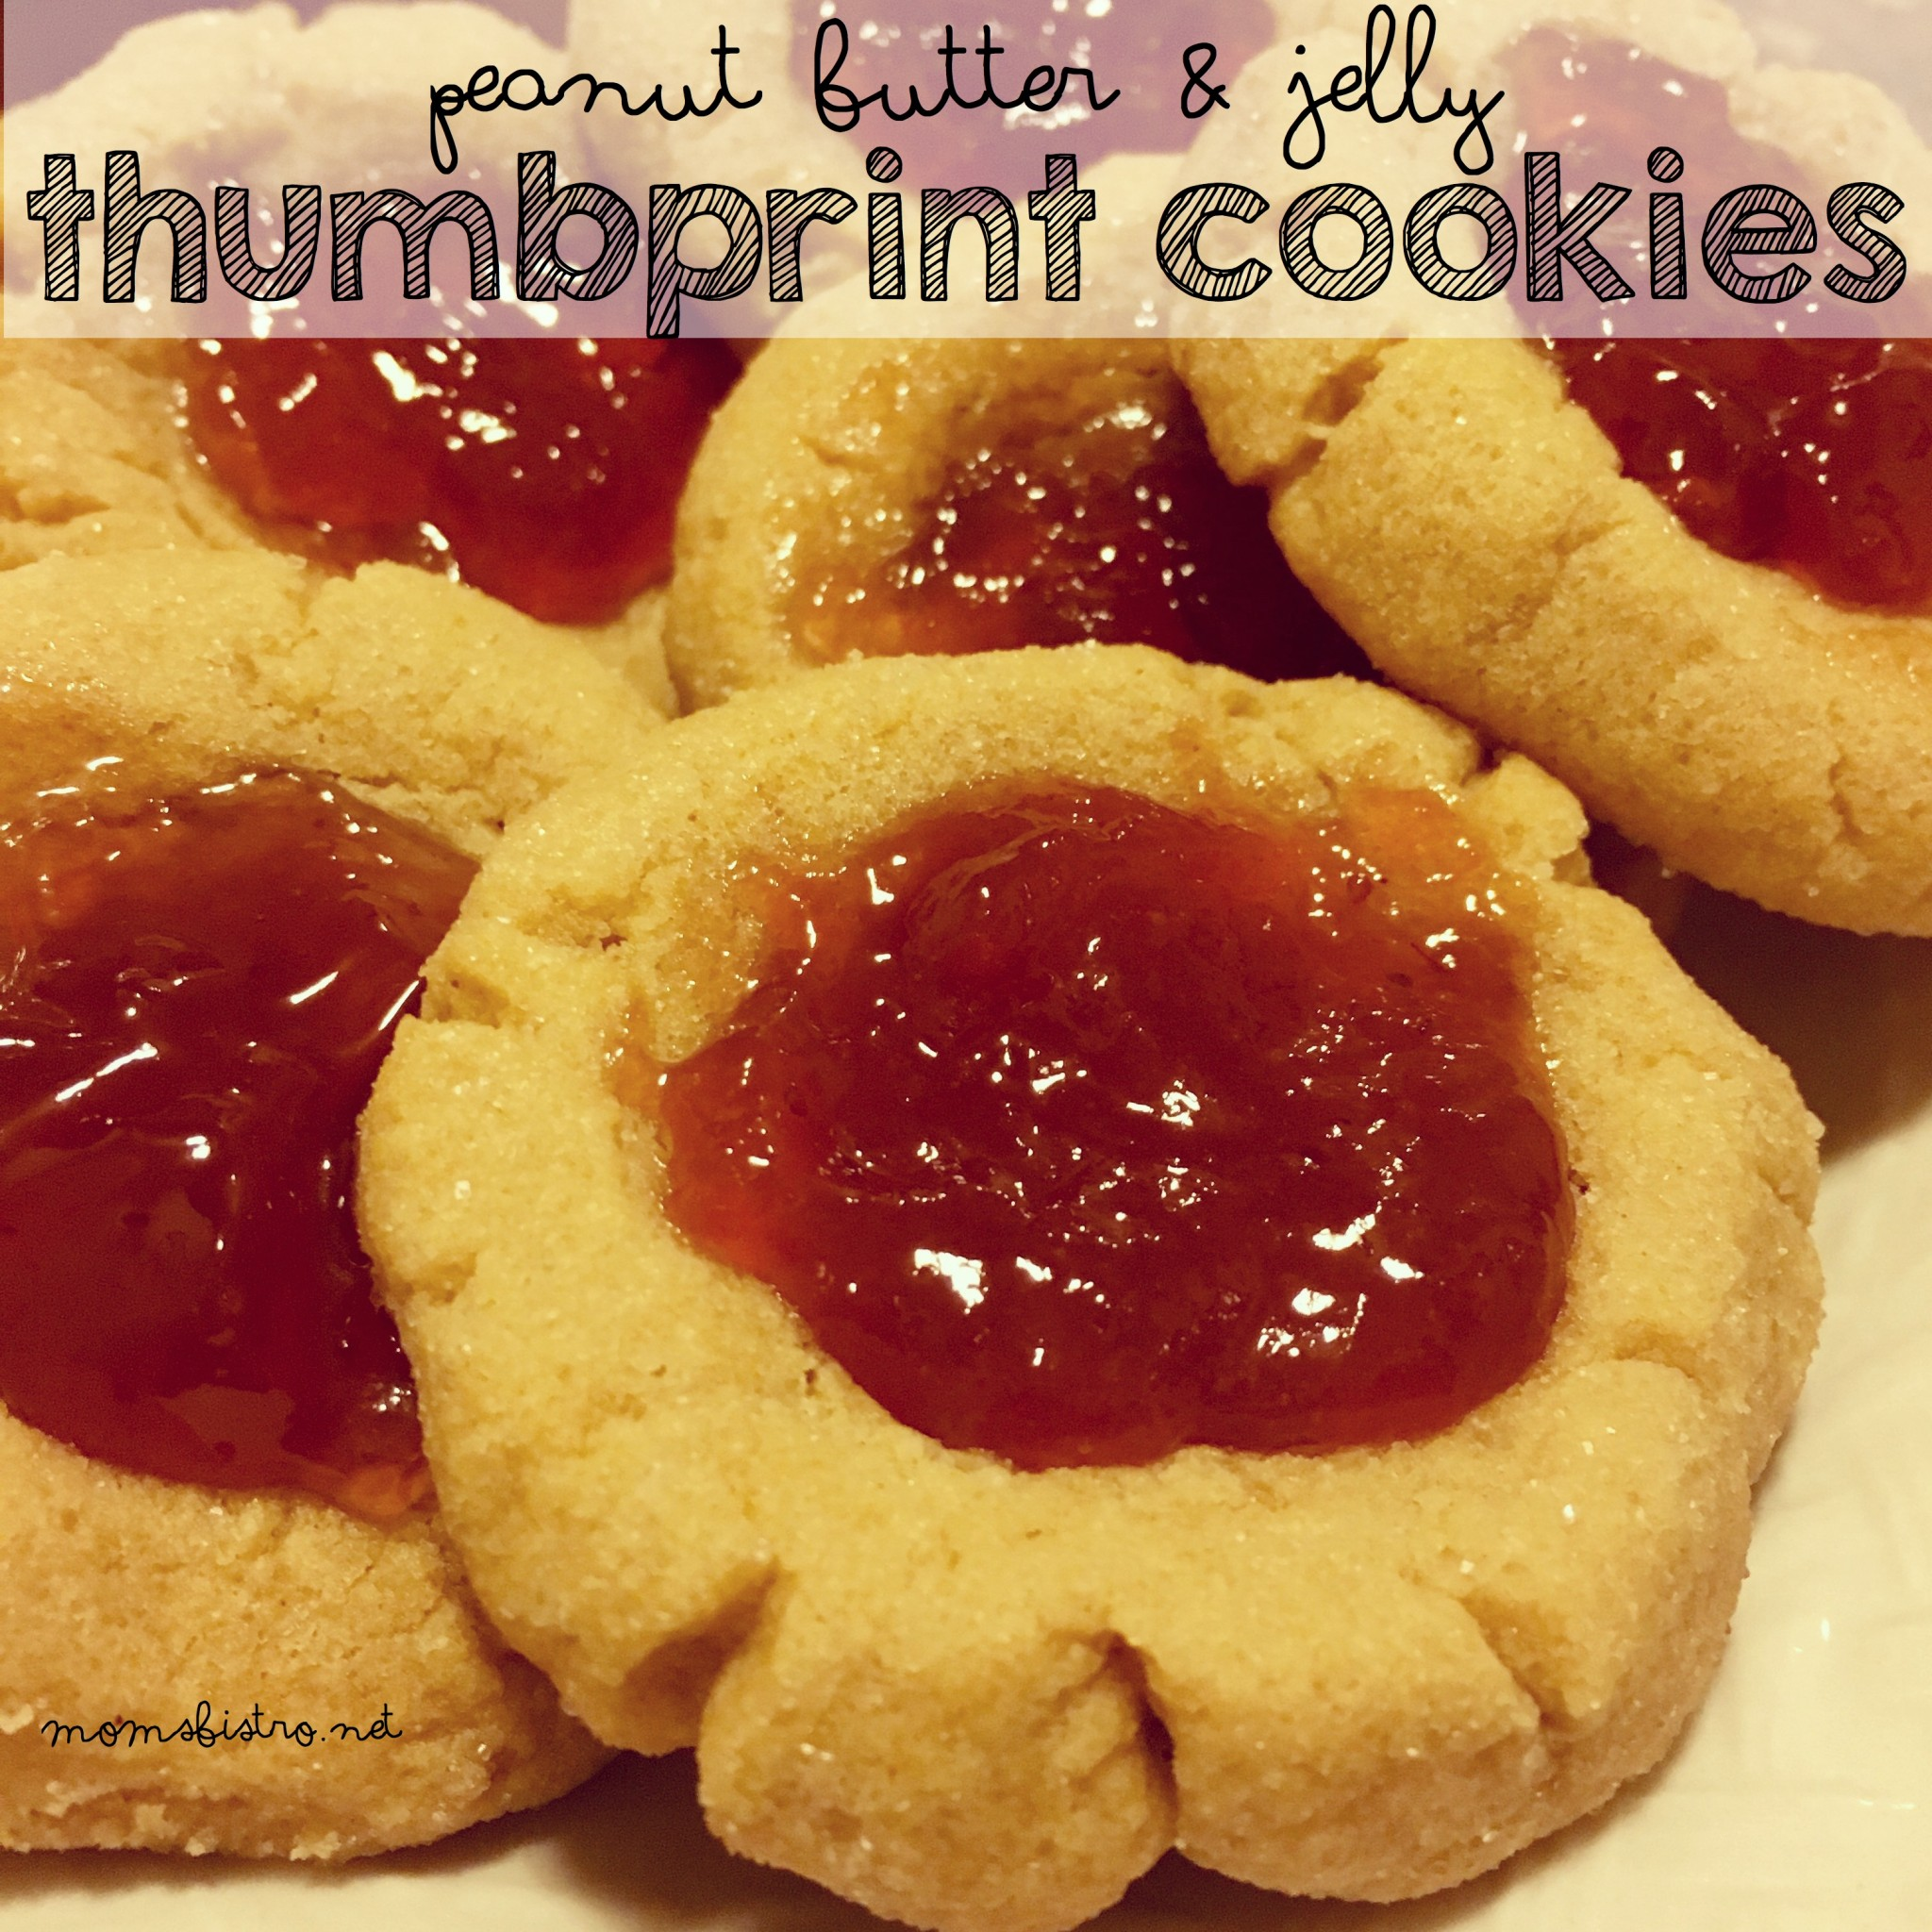 Get Ready For National Peanut Butter Day!  Celebrate Tomorrow with Peanut Butter and Jelly Thumbprint Cookies